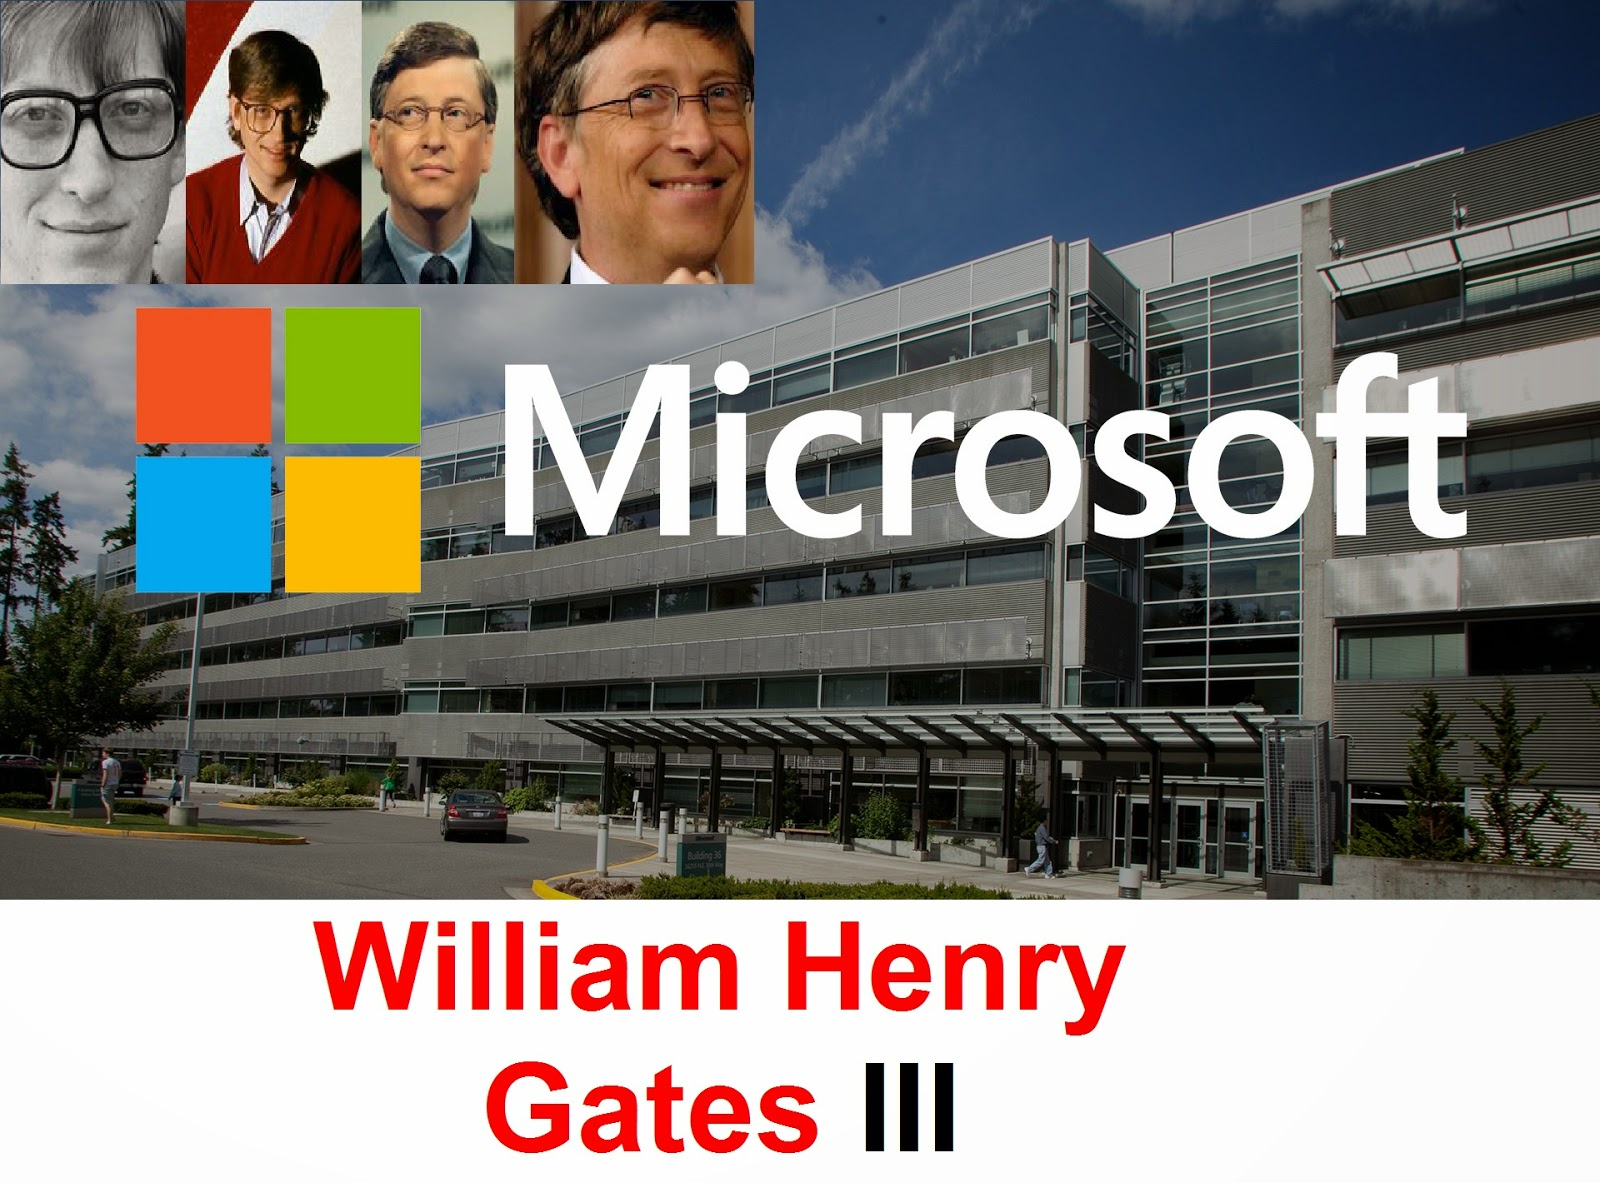 William Henry Gates III